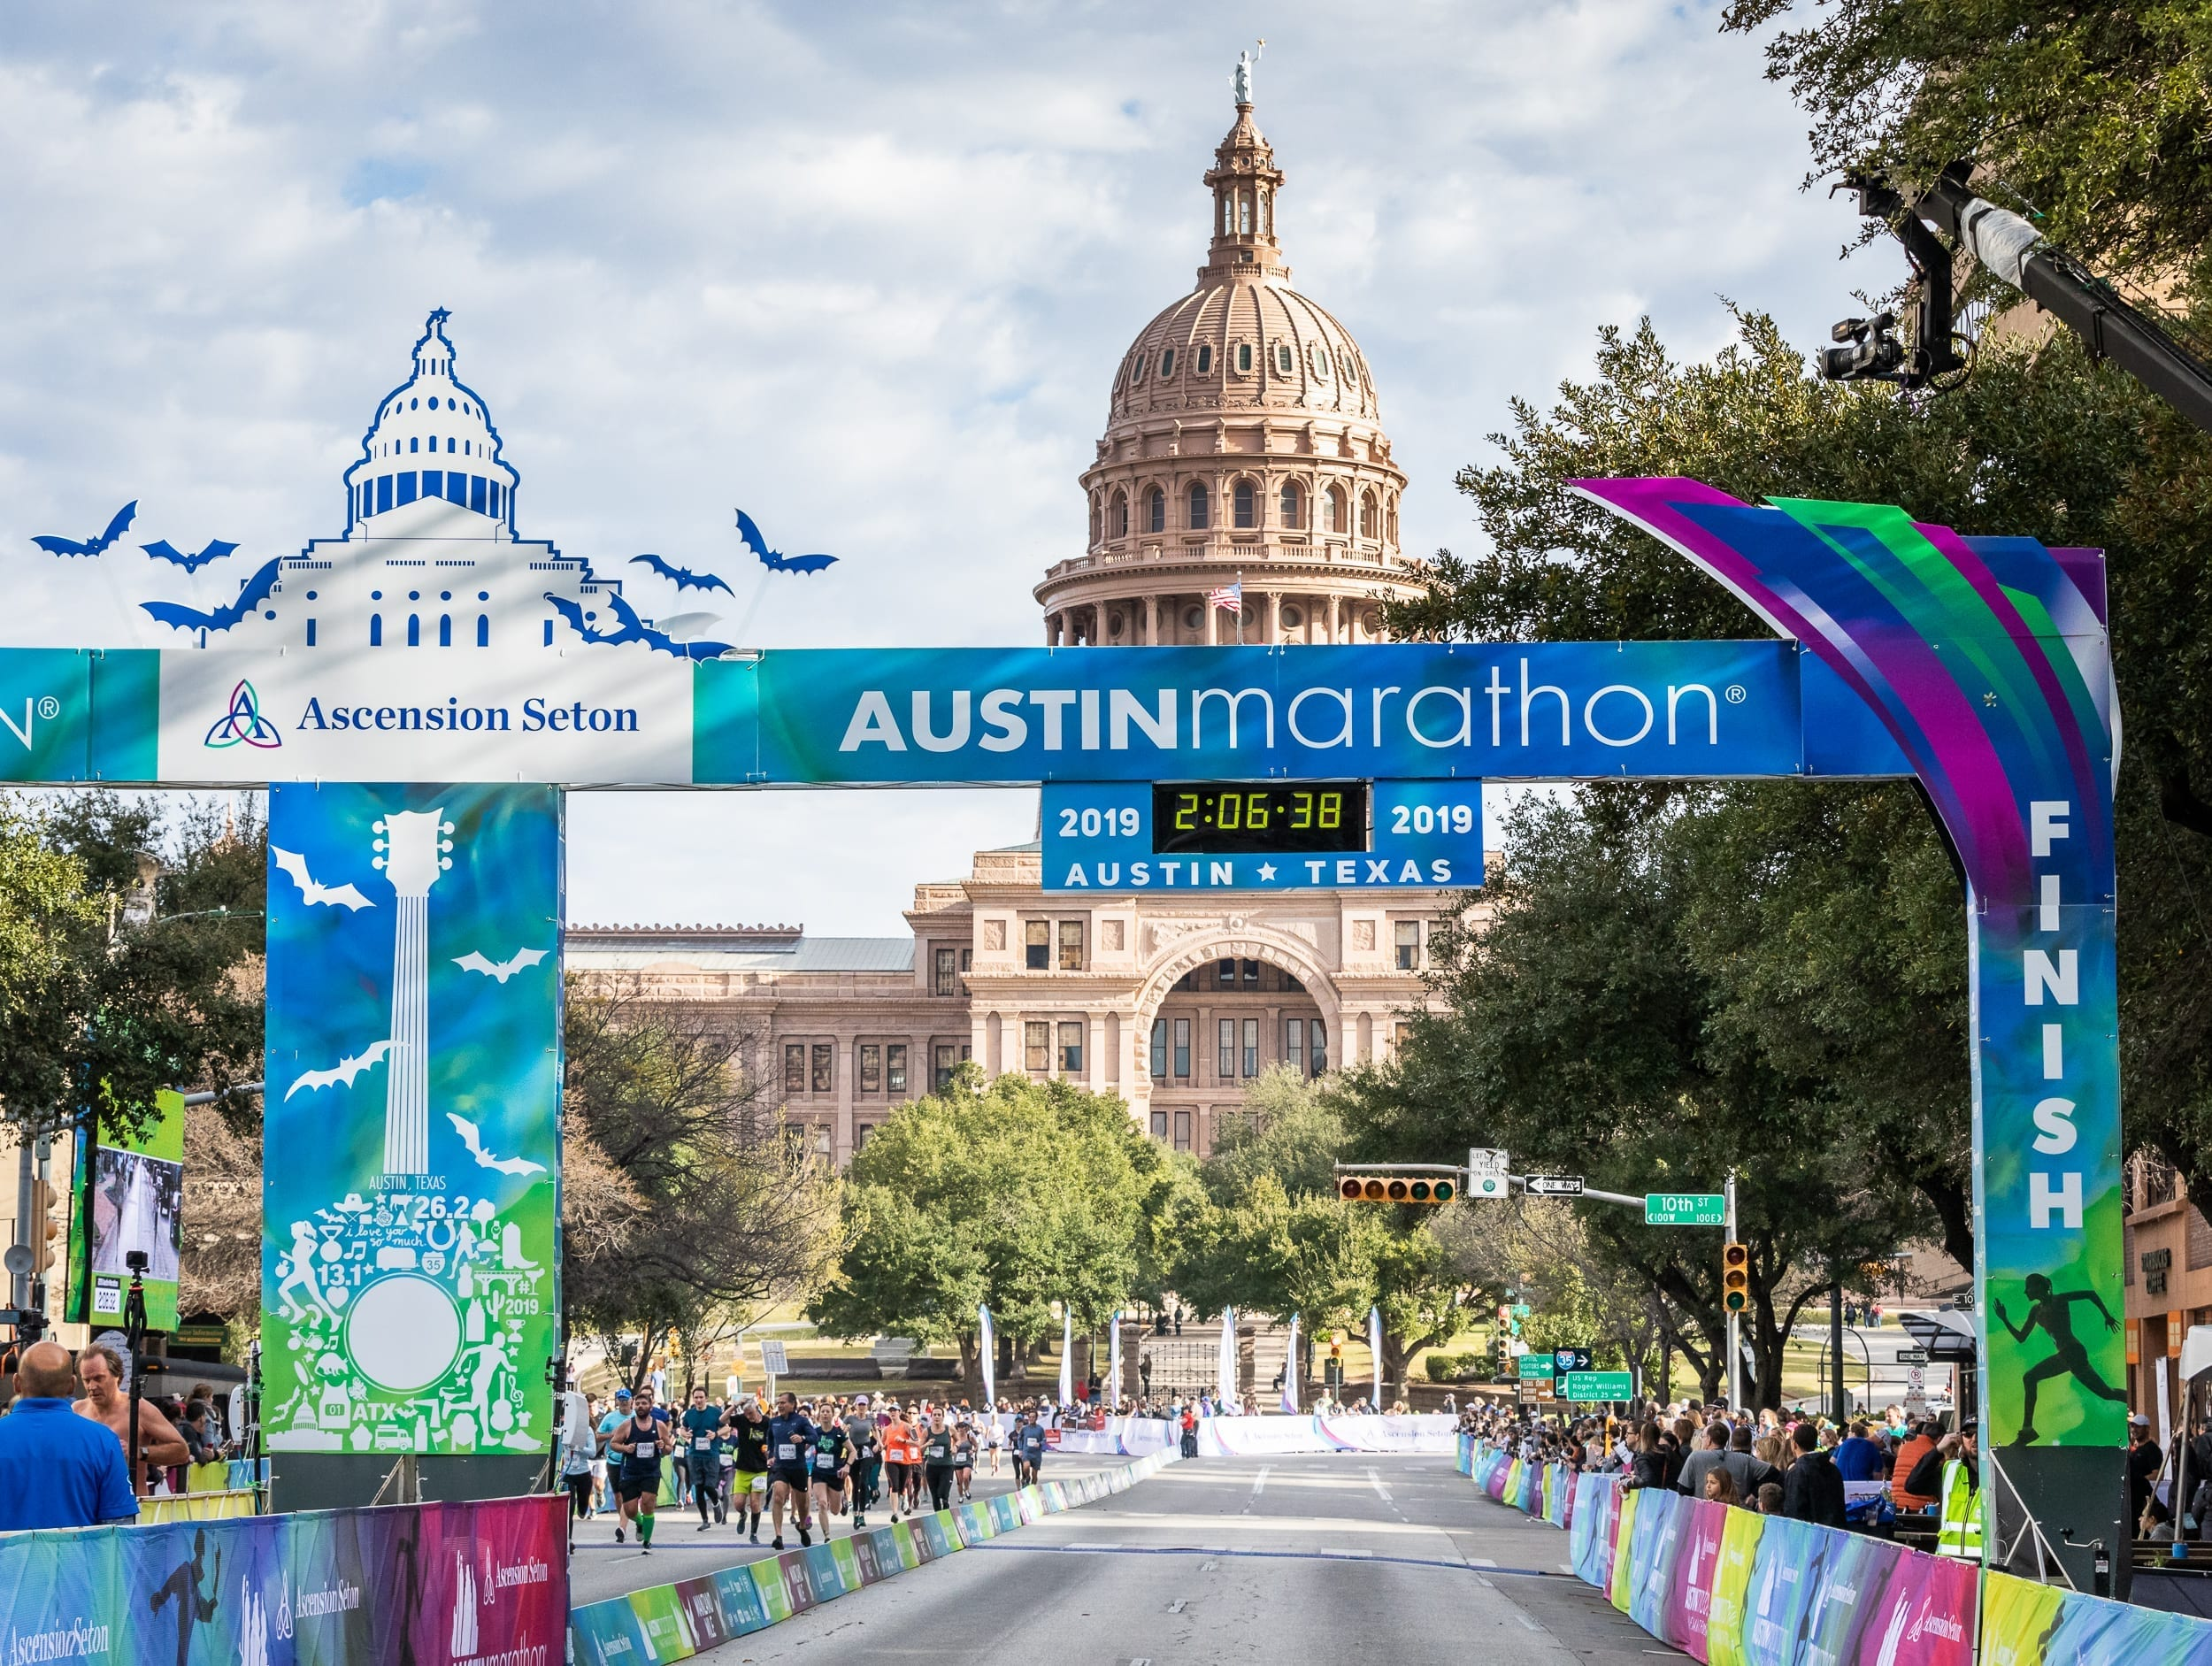 Image of the 2019 Ascension Seton Austin Marathon finish line with the Texas State Capitol in the background. Follow the GU Energy Labs advice in this blog about proper nutrition to help you get to the 2020 Ascension Seton Austin Marathon finish line.